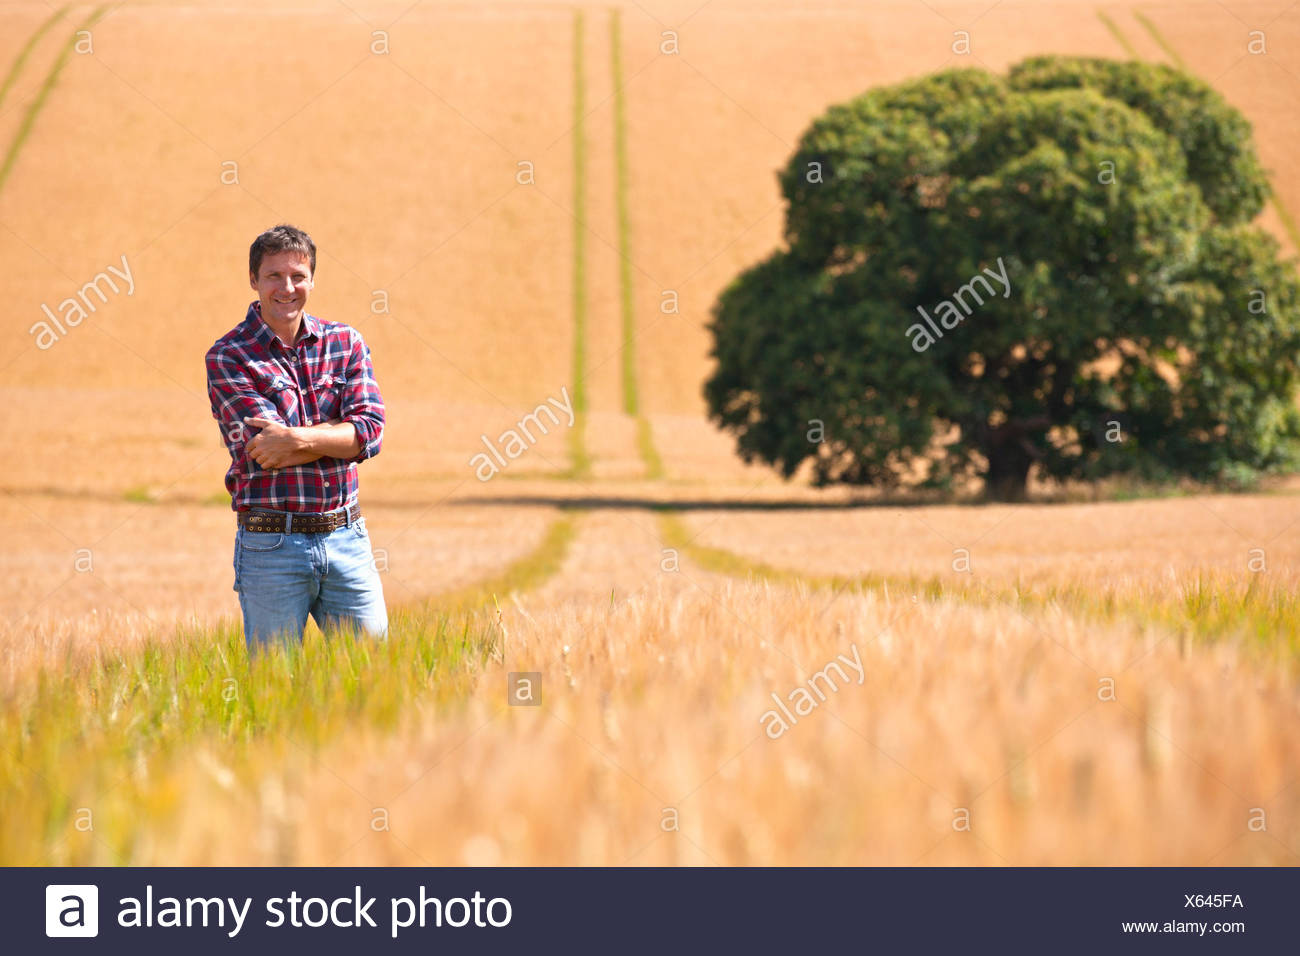 Portrait confident farmer standing in sunny rural barley crop field in summer - Stock Image